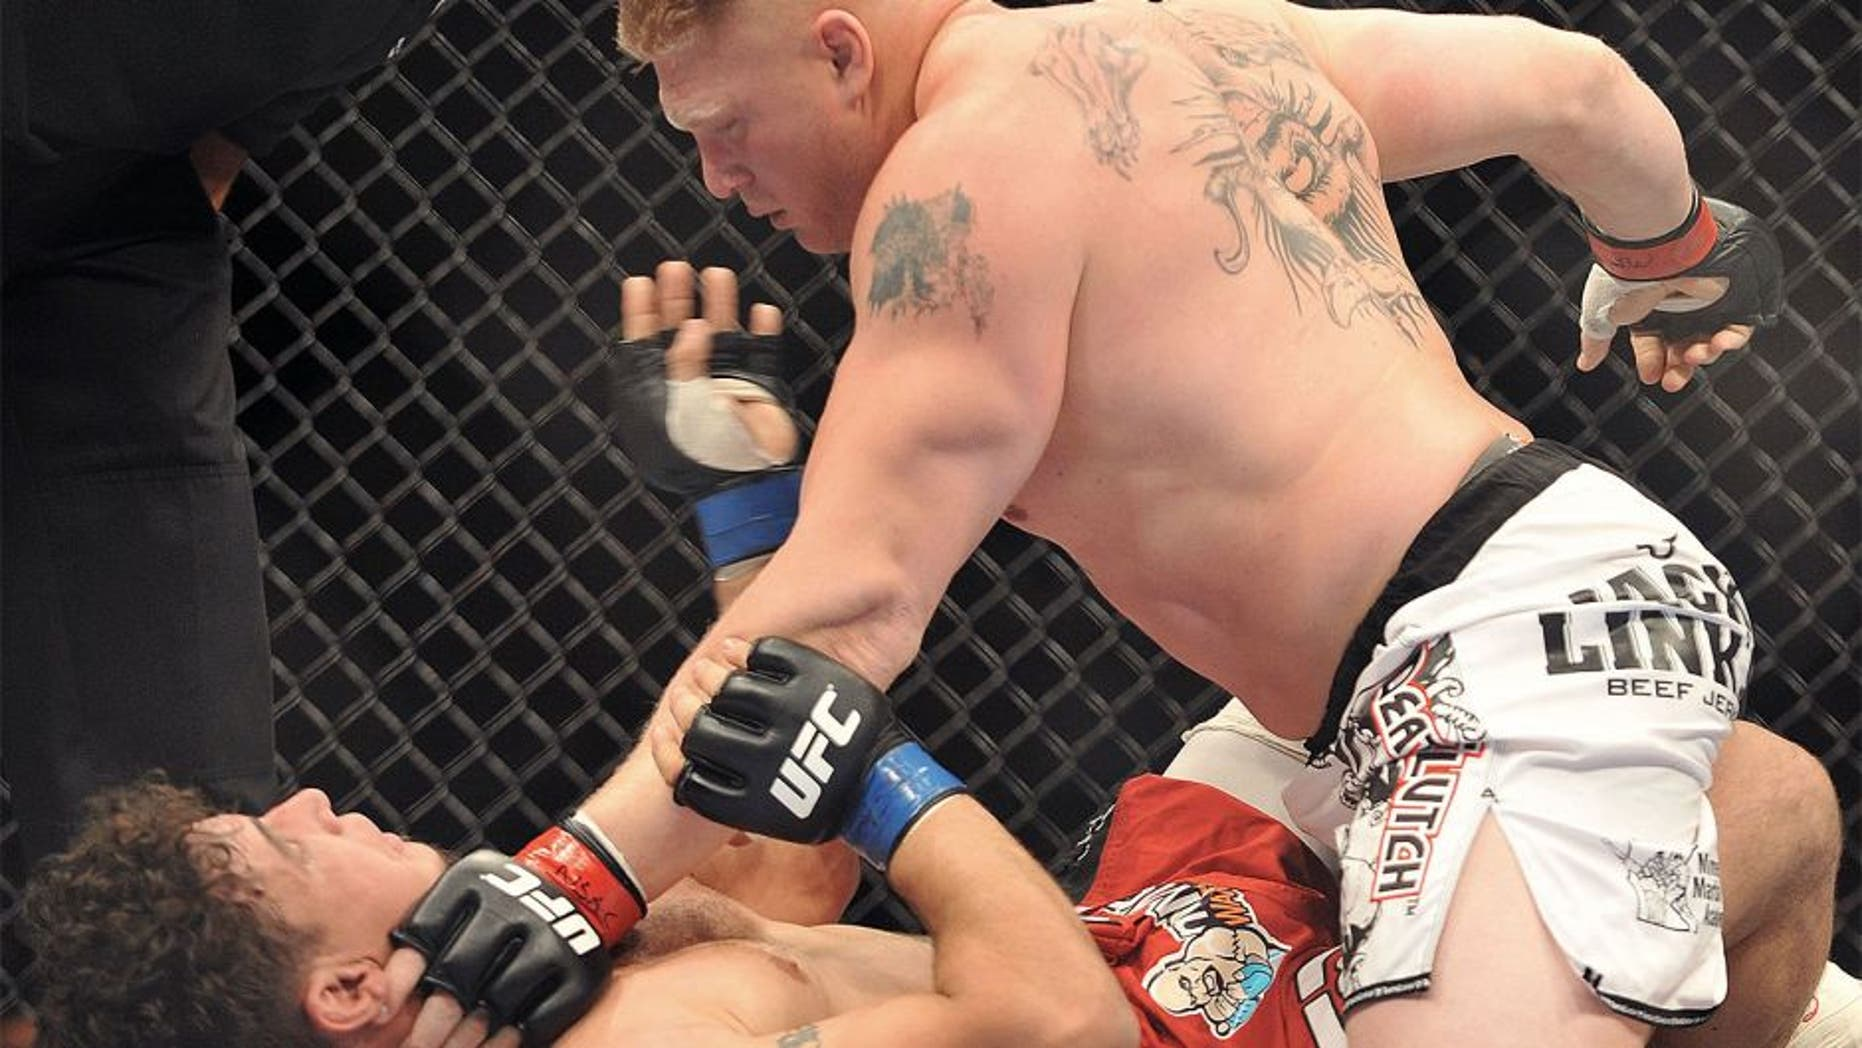 LAS VEGAS - JULY 11: UFC heavyweights Brock Lesnar (R) battles Frank Mir (L) during their heavyweight title bout during UFC 100 the Mandalay Bay Hotel and Casino on July 11, 2009 in Las Vegas, Nevada. (Photo by Jon Kopaloff/Getty Images)